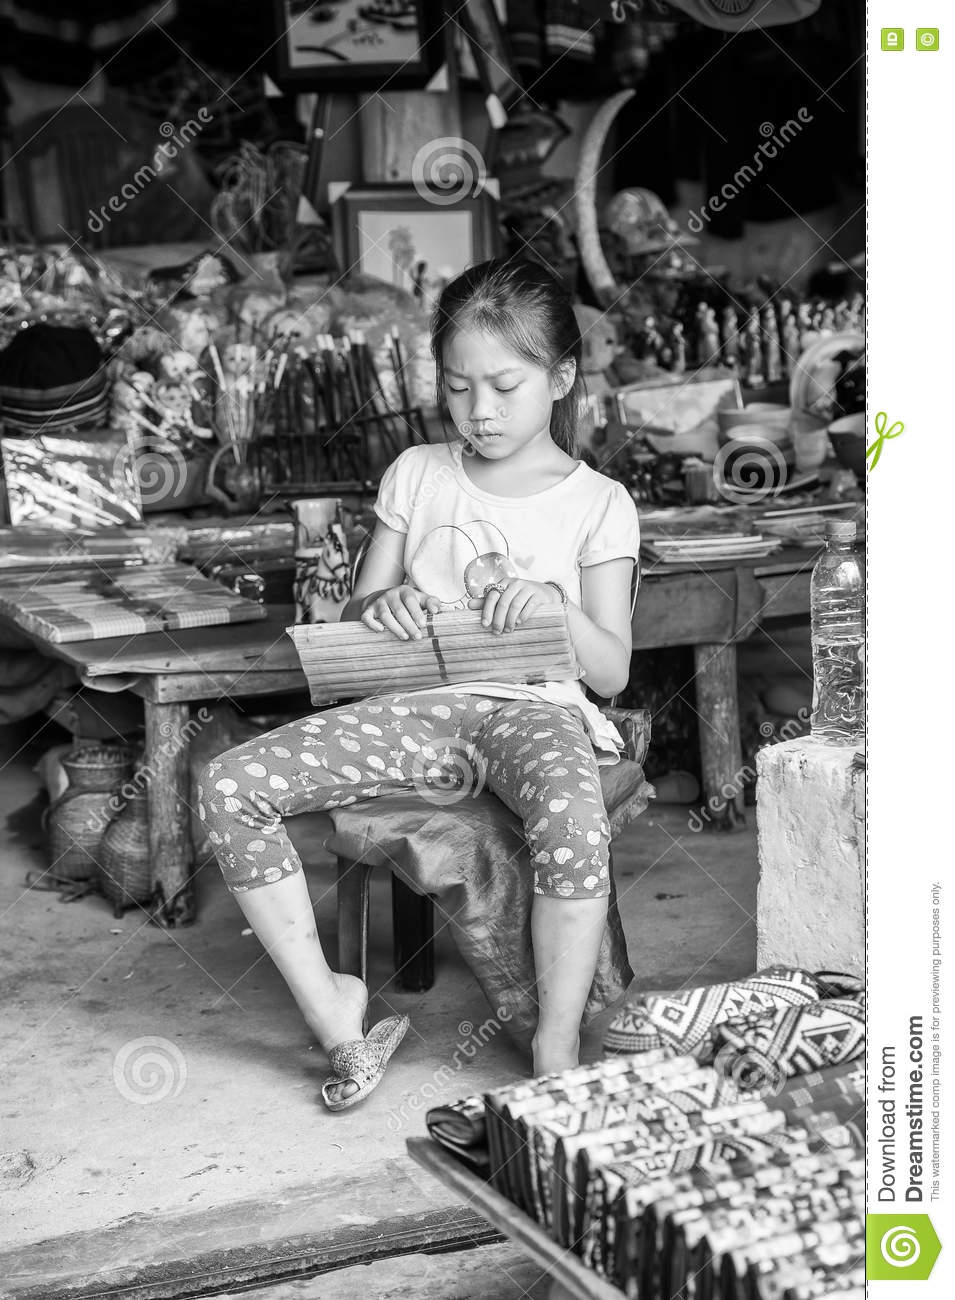 Real People In Vietnam, In Black And White Editorial Photo